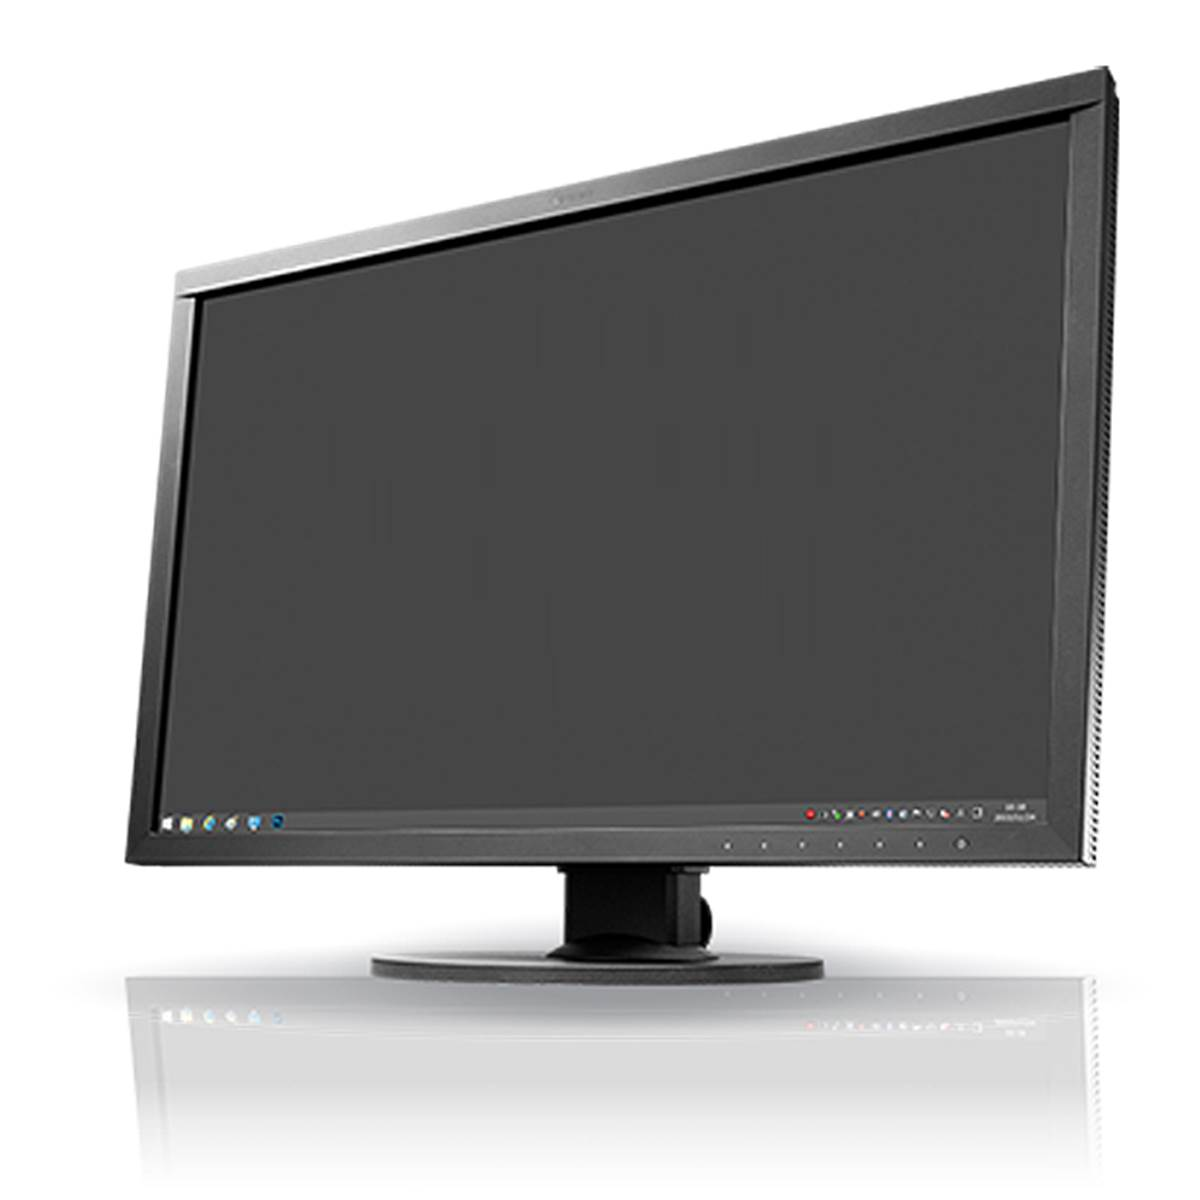 Ecran eizo coloredge cs2420 24 au meilleur prix prophot for Ecran eizo pour photographe